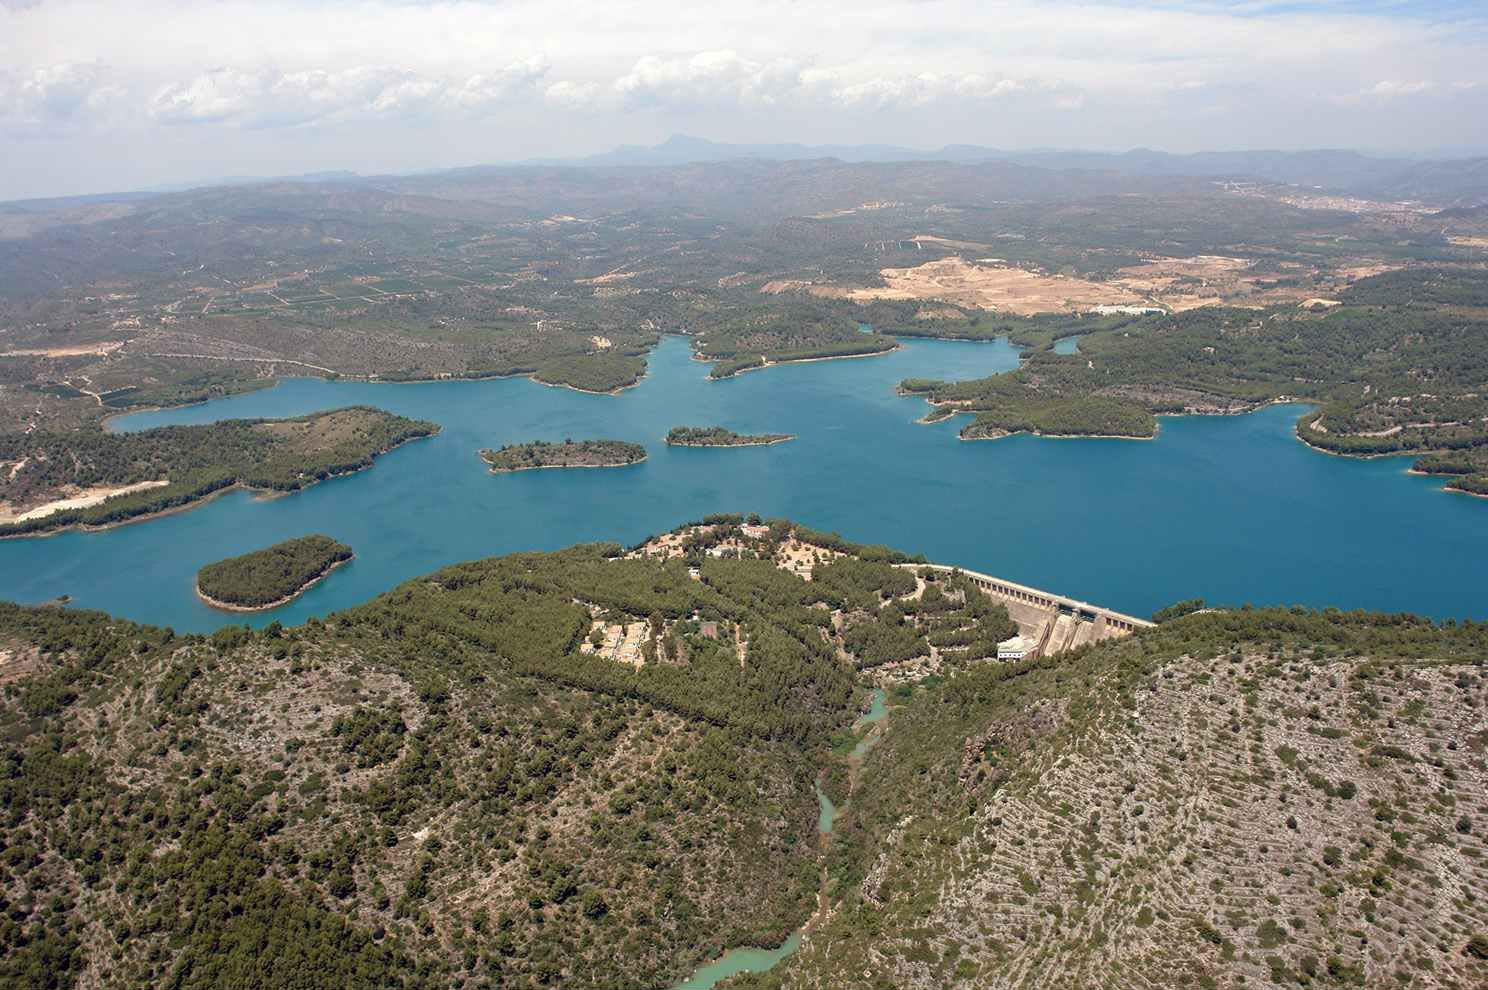 https://zeppeline.es/wp-content/uploads/2015/09/vista-aerea-de-embalse-video-fotografia-aerea1.jpg